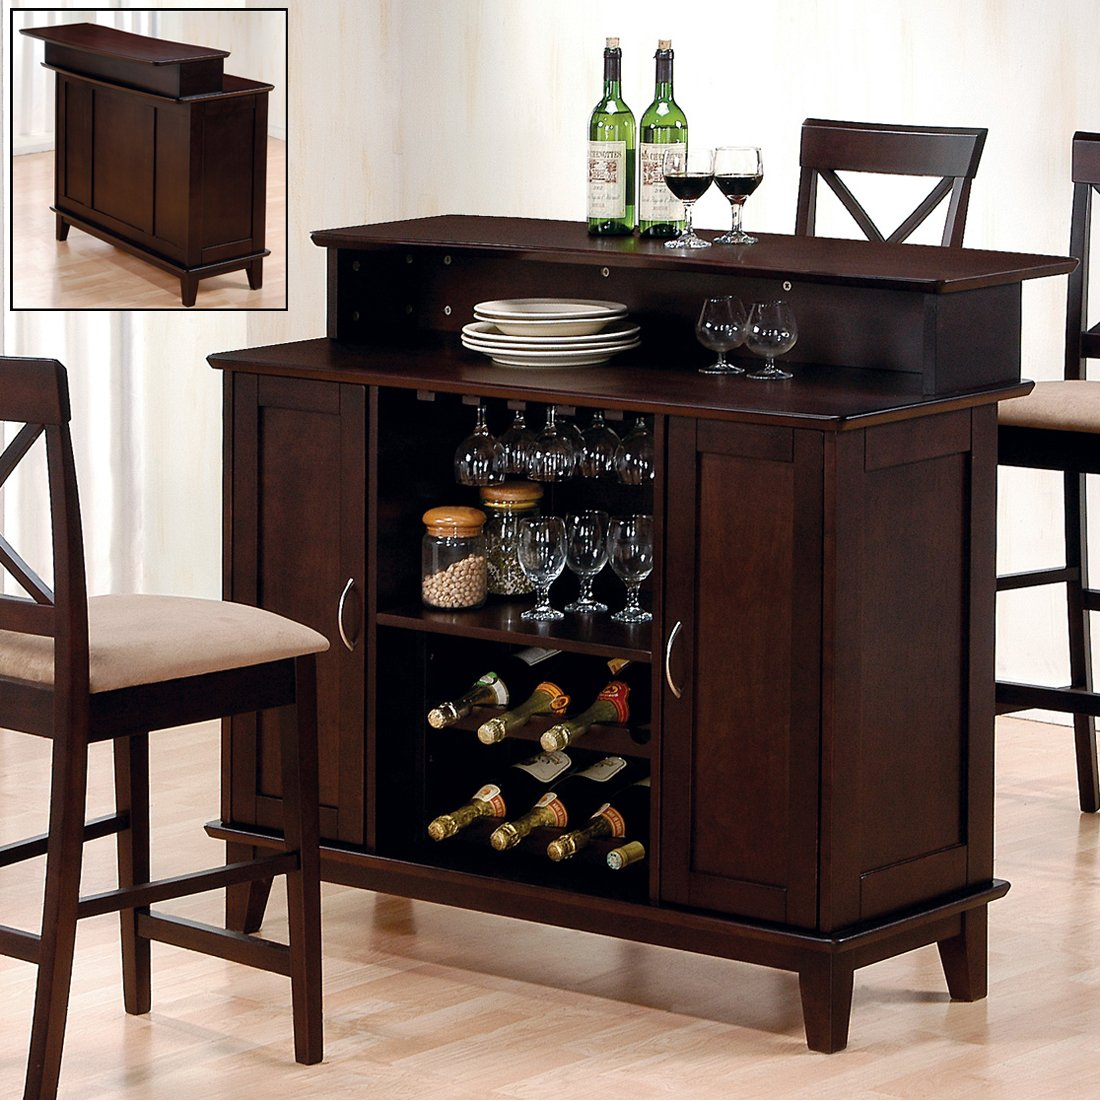 Small bar furniture for apartment best decor things for Small apartment furniture ideas